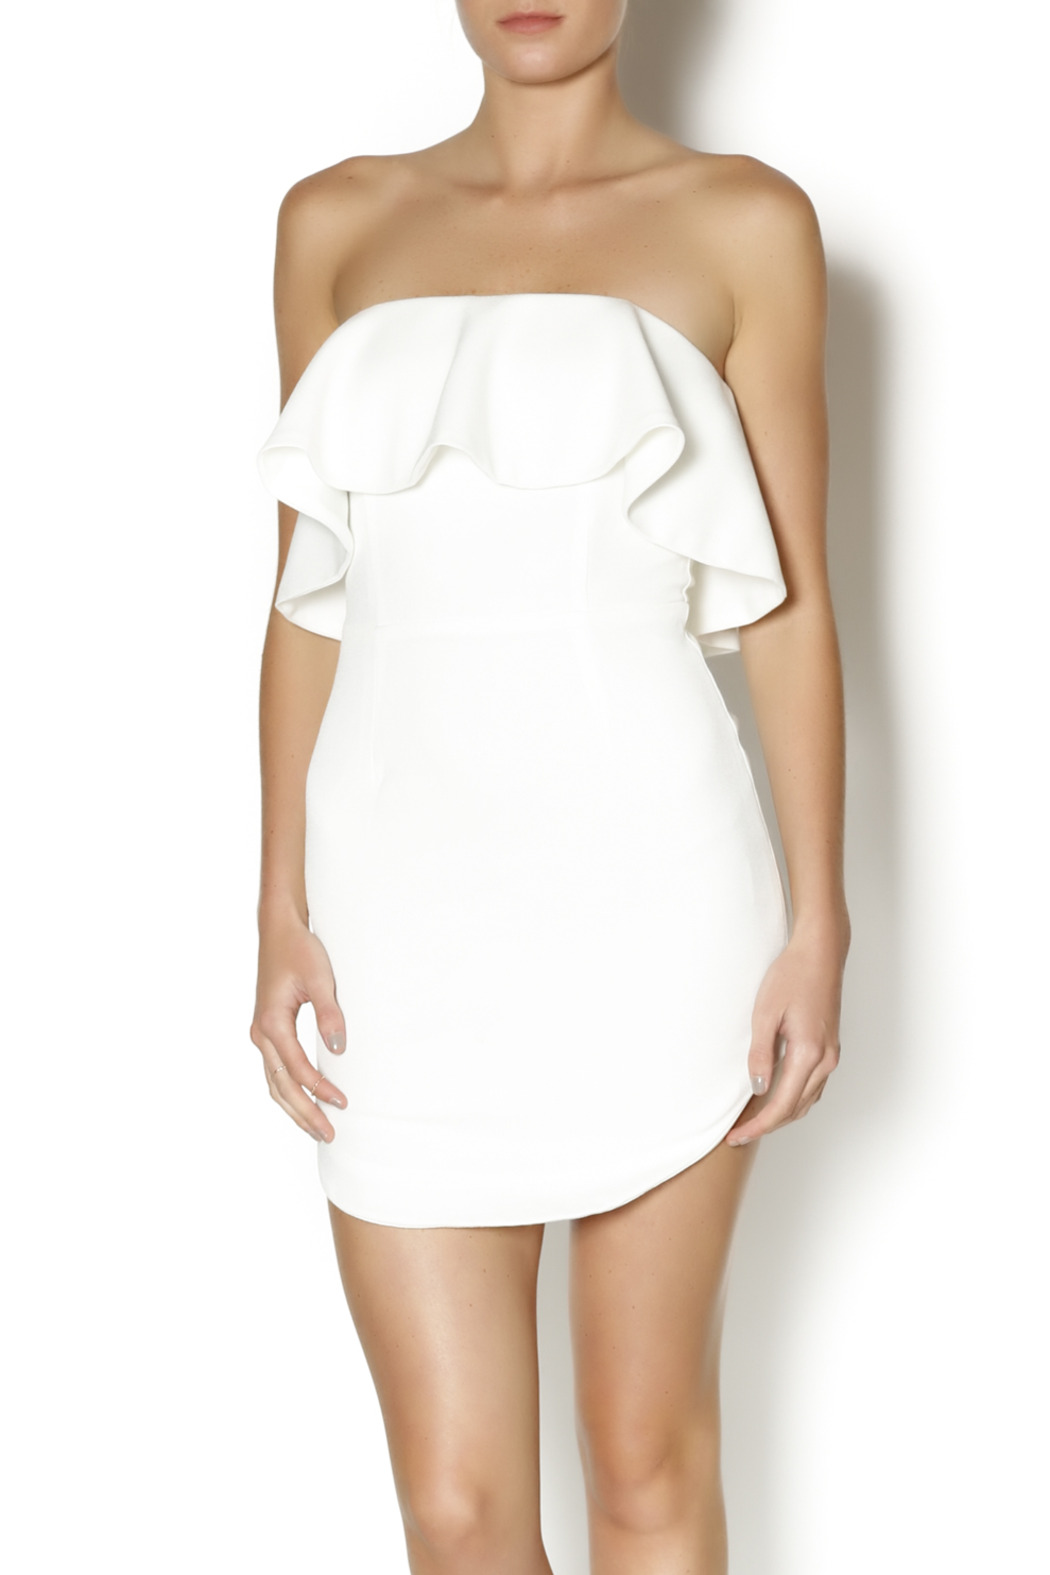 luxxel Tiered White Dress - Main Image